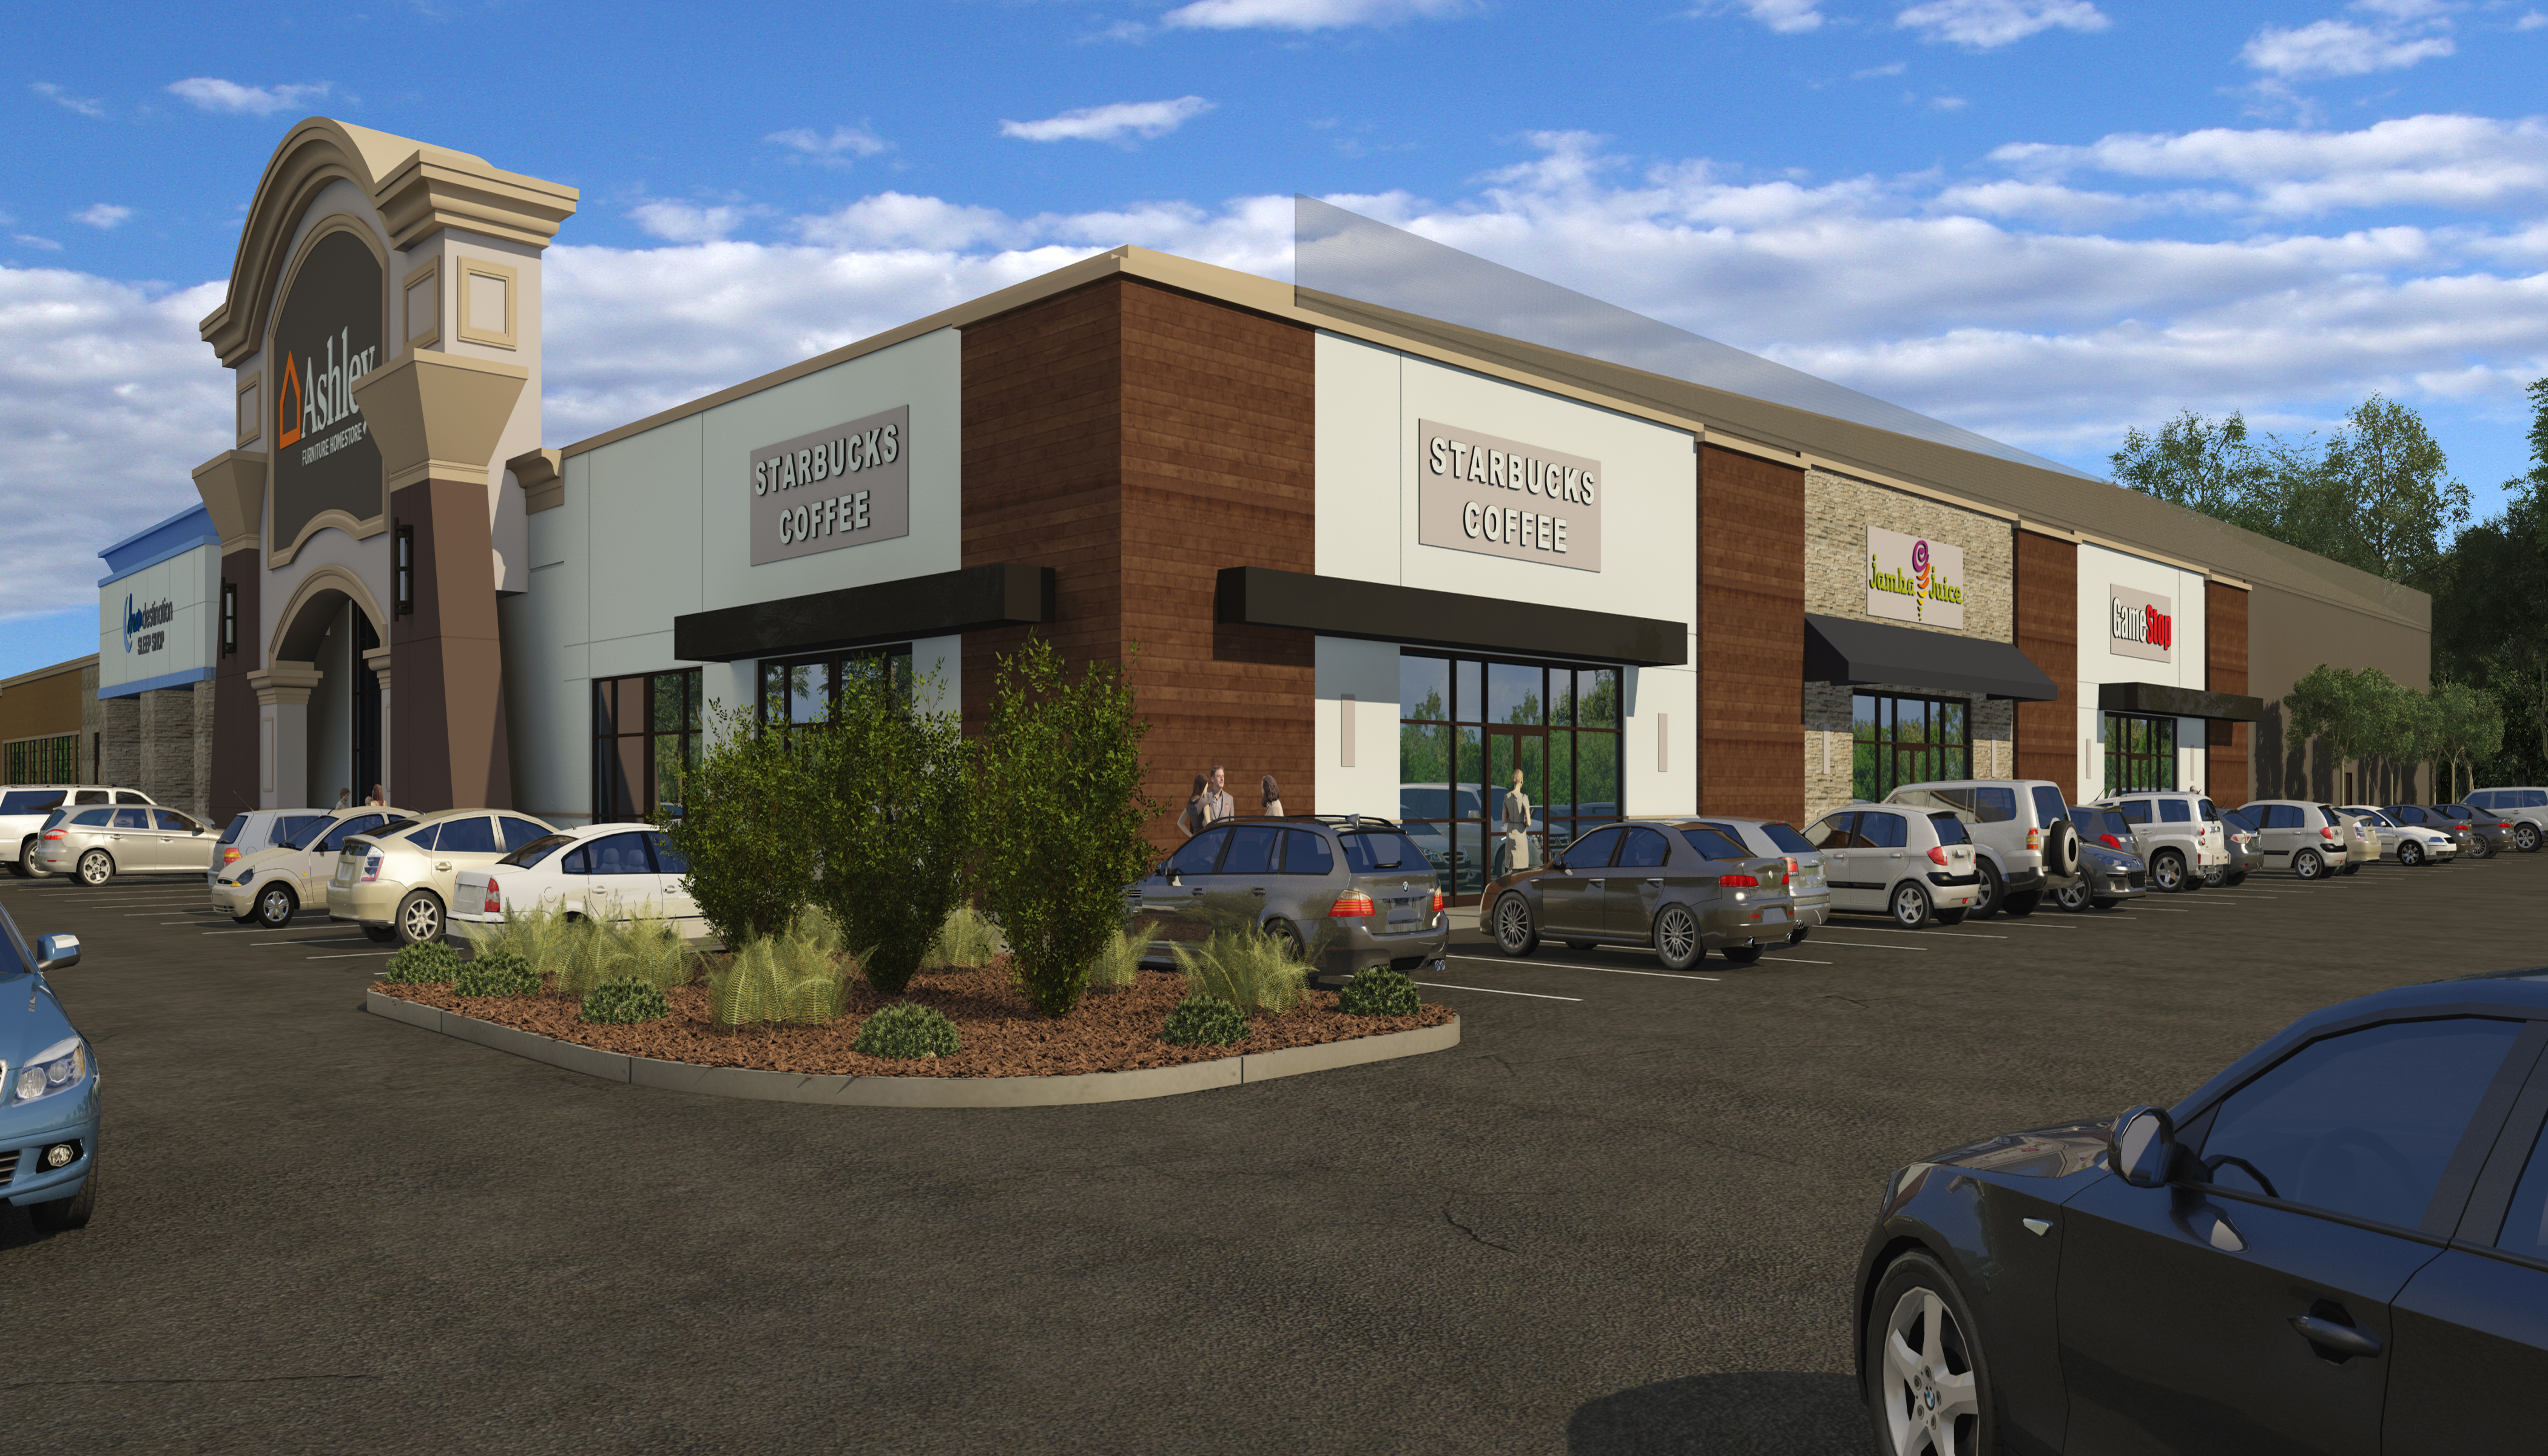 Ashley Furniture Center - The Goldstein Group: NJ and NY ...